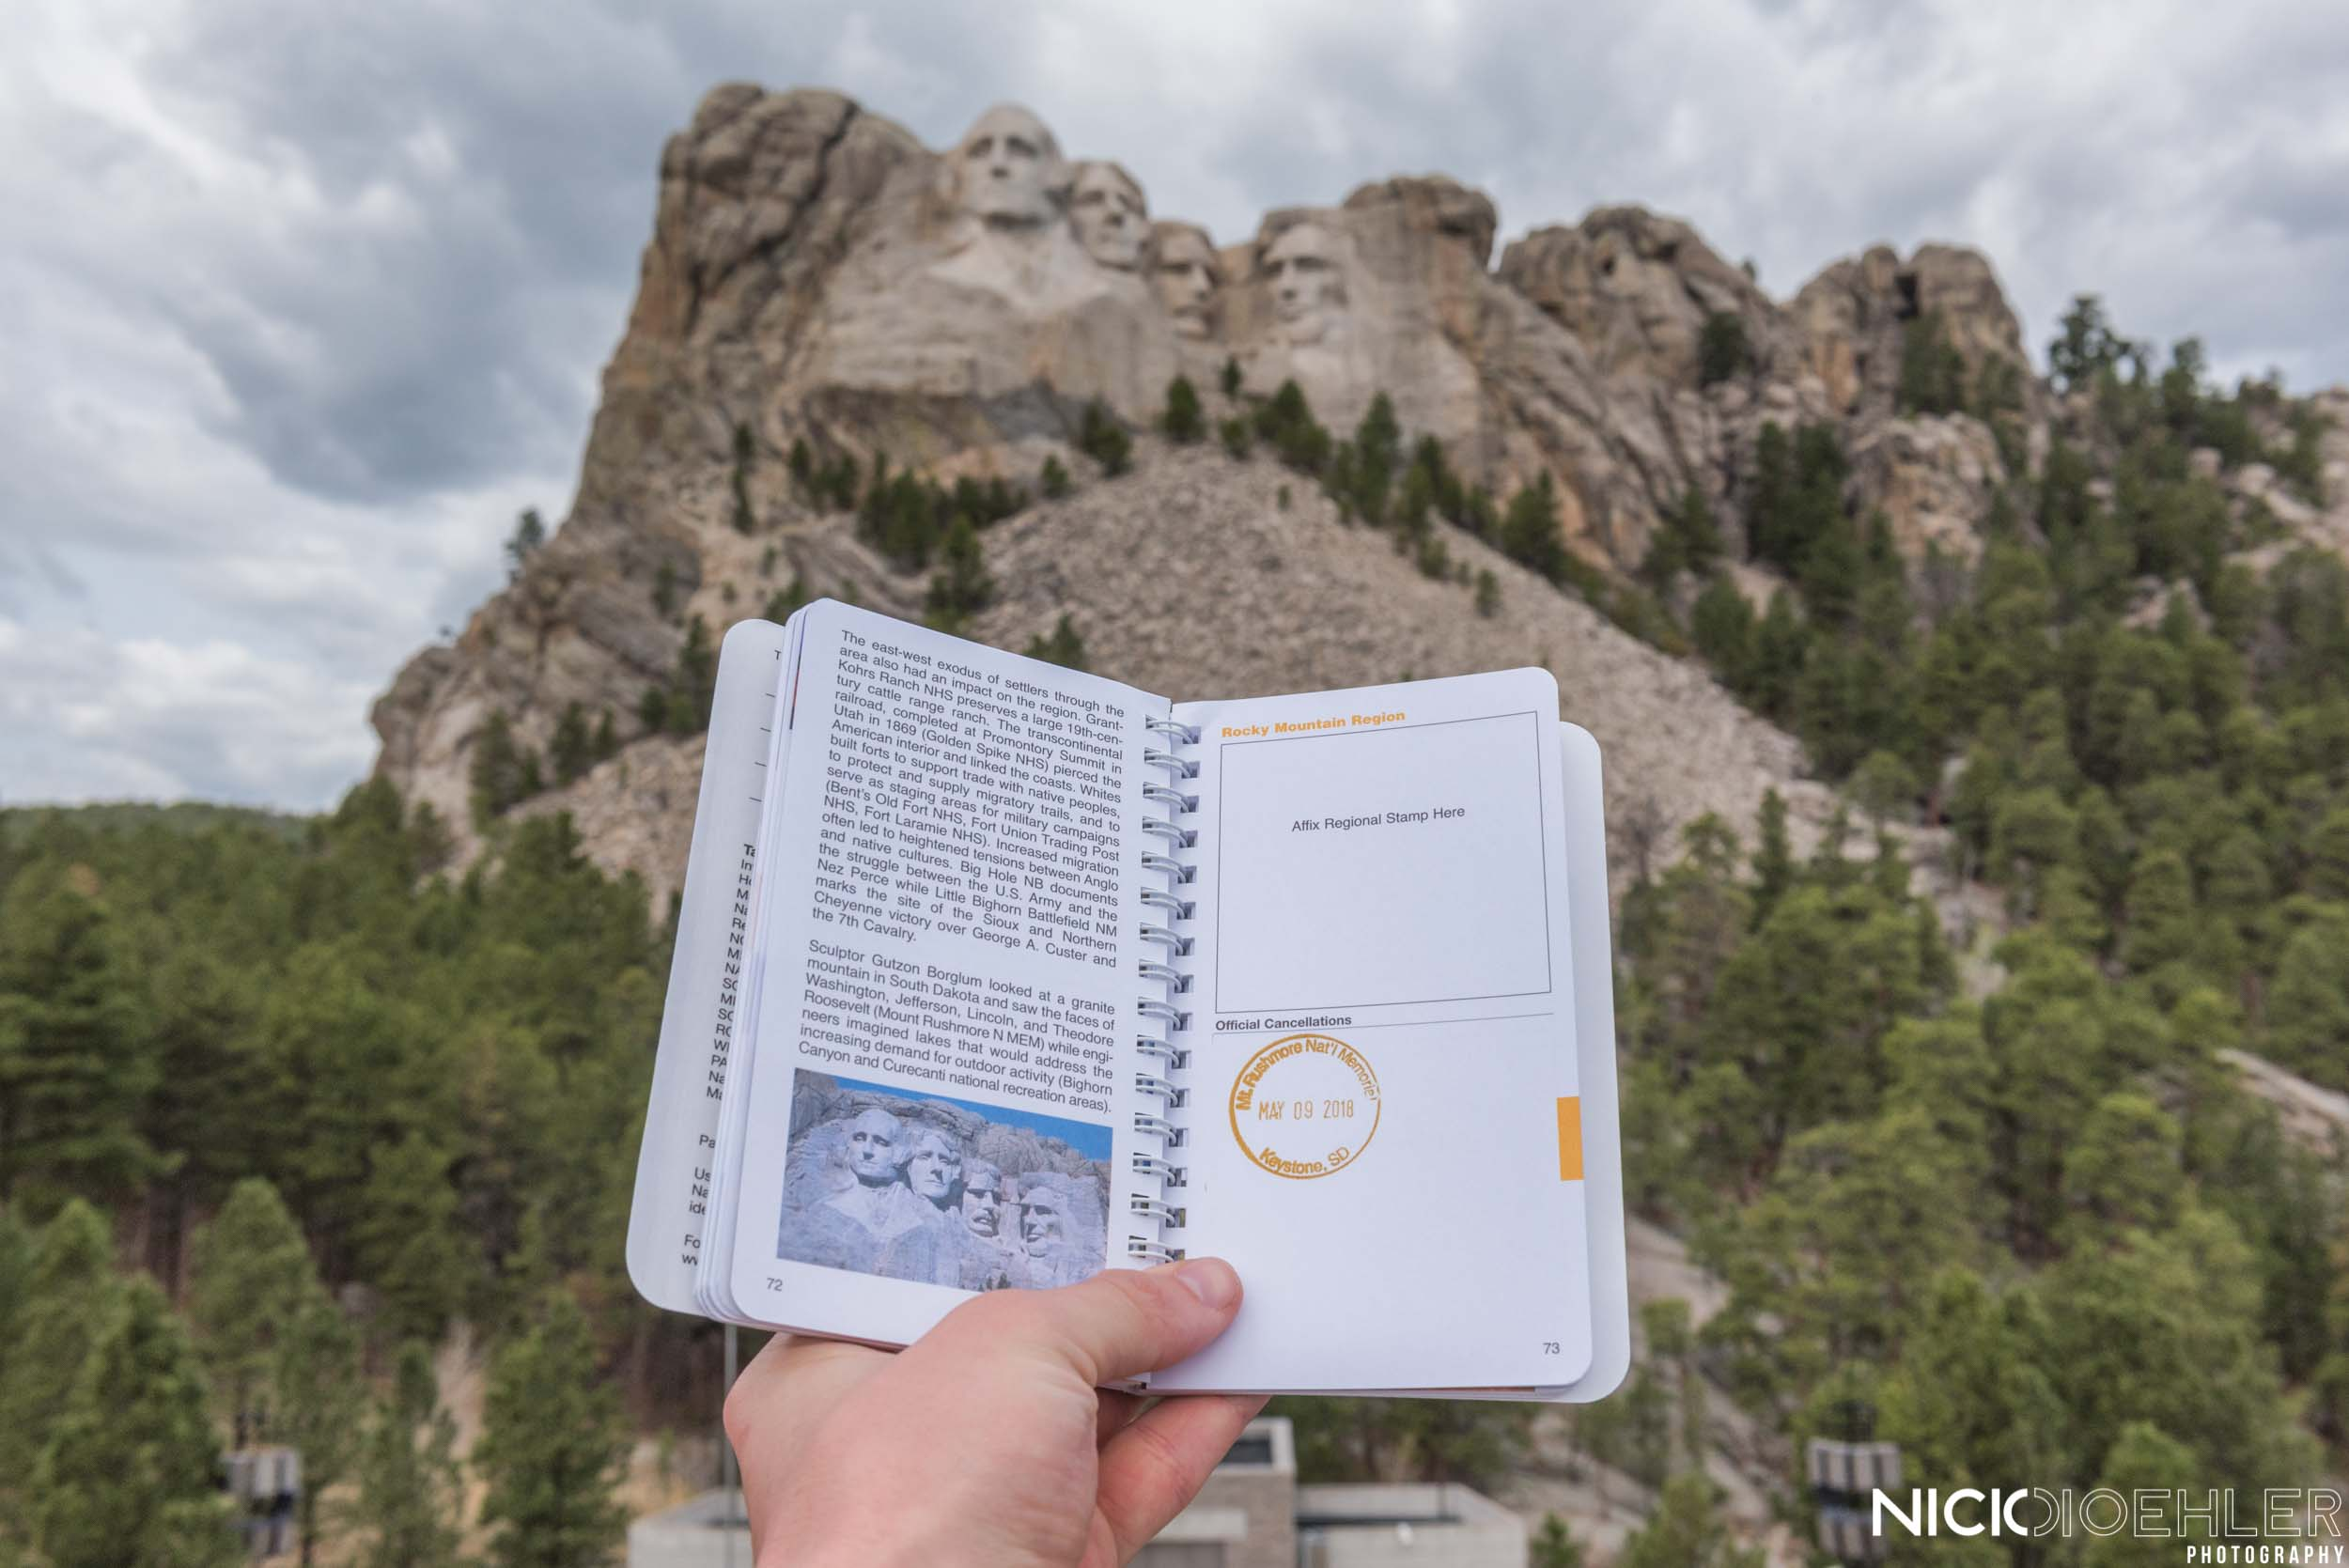 Mount Rushmore: Holding my passport book in front of a great historical monument.